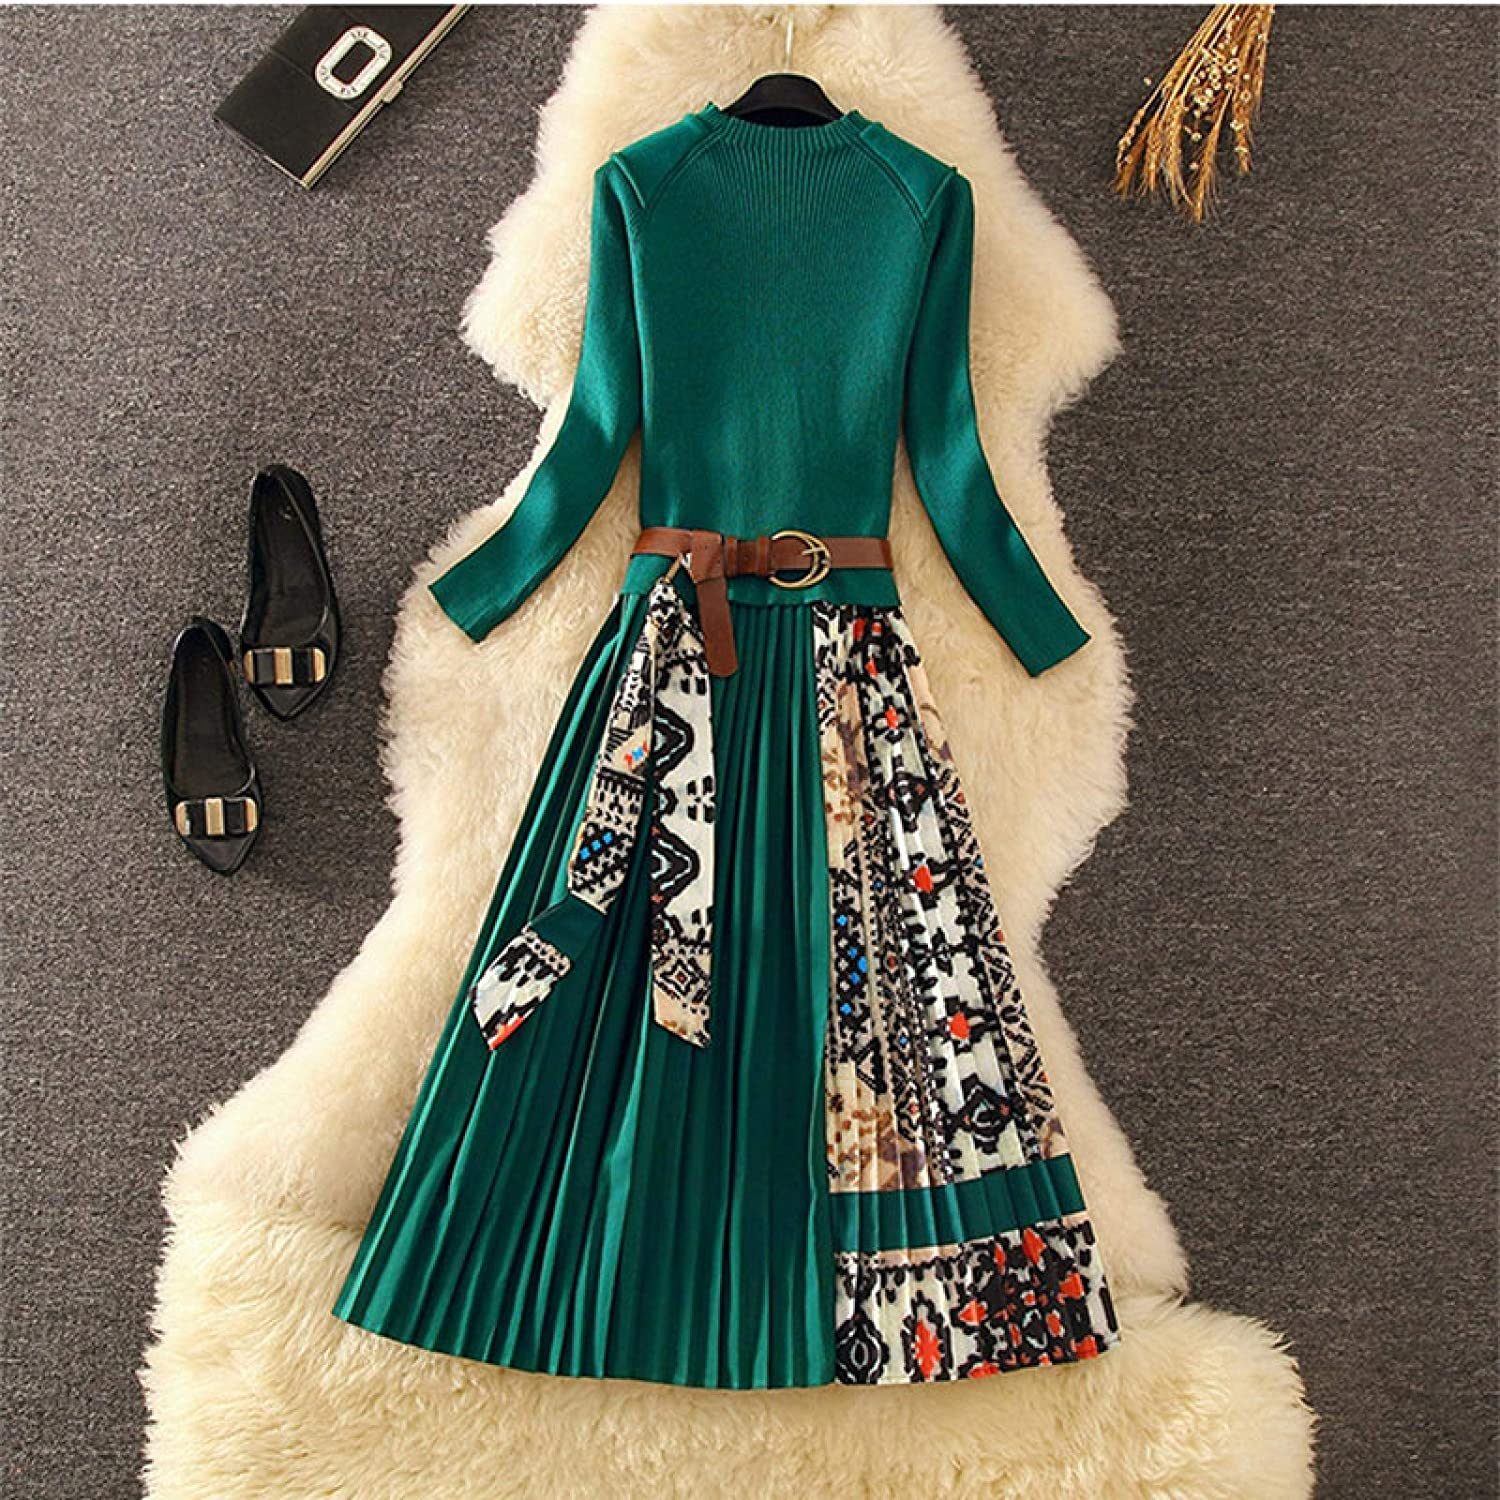 Dresses For Women Knitted Pleated Midi Dress Fashion Women Long Sleeve Printing Knitted Spliced Draped Casual Dress